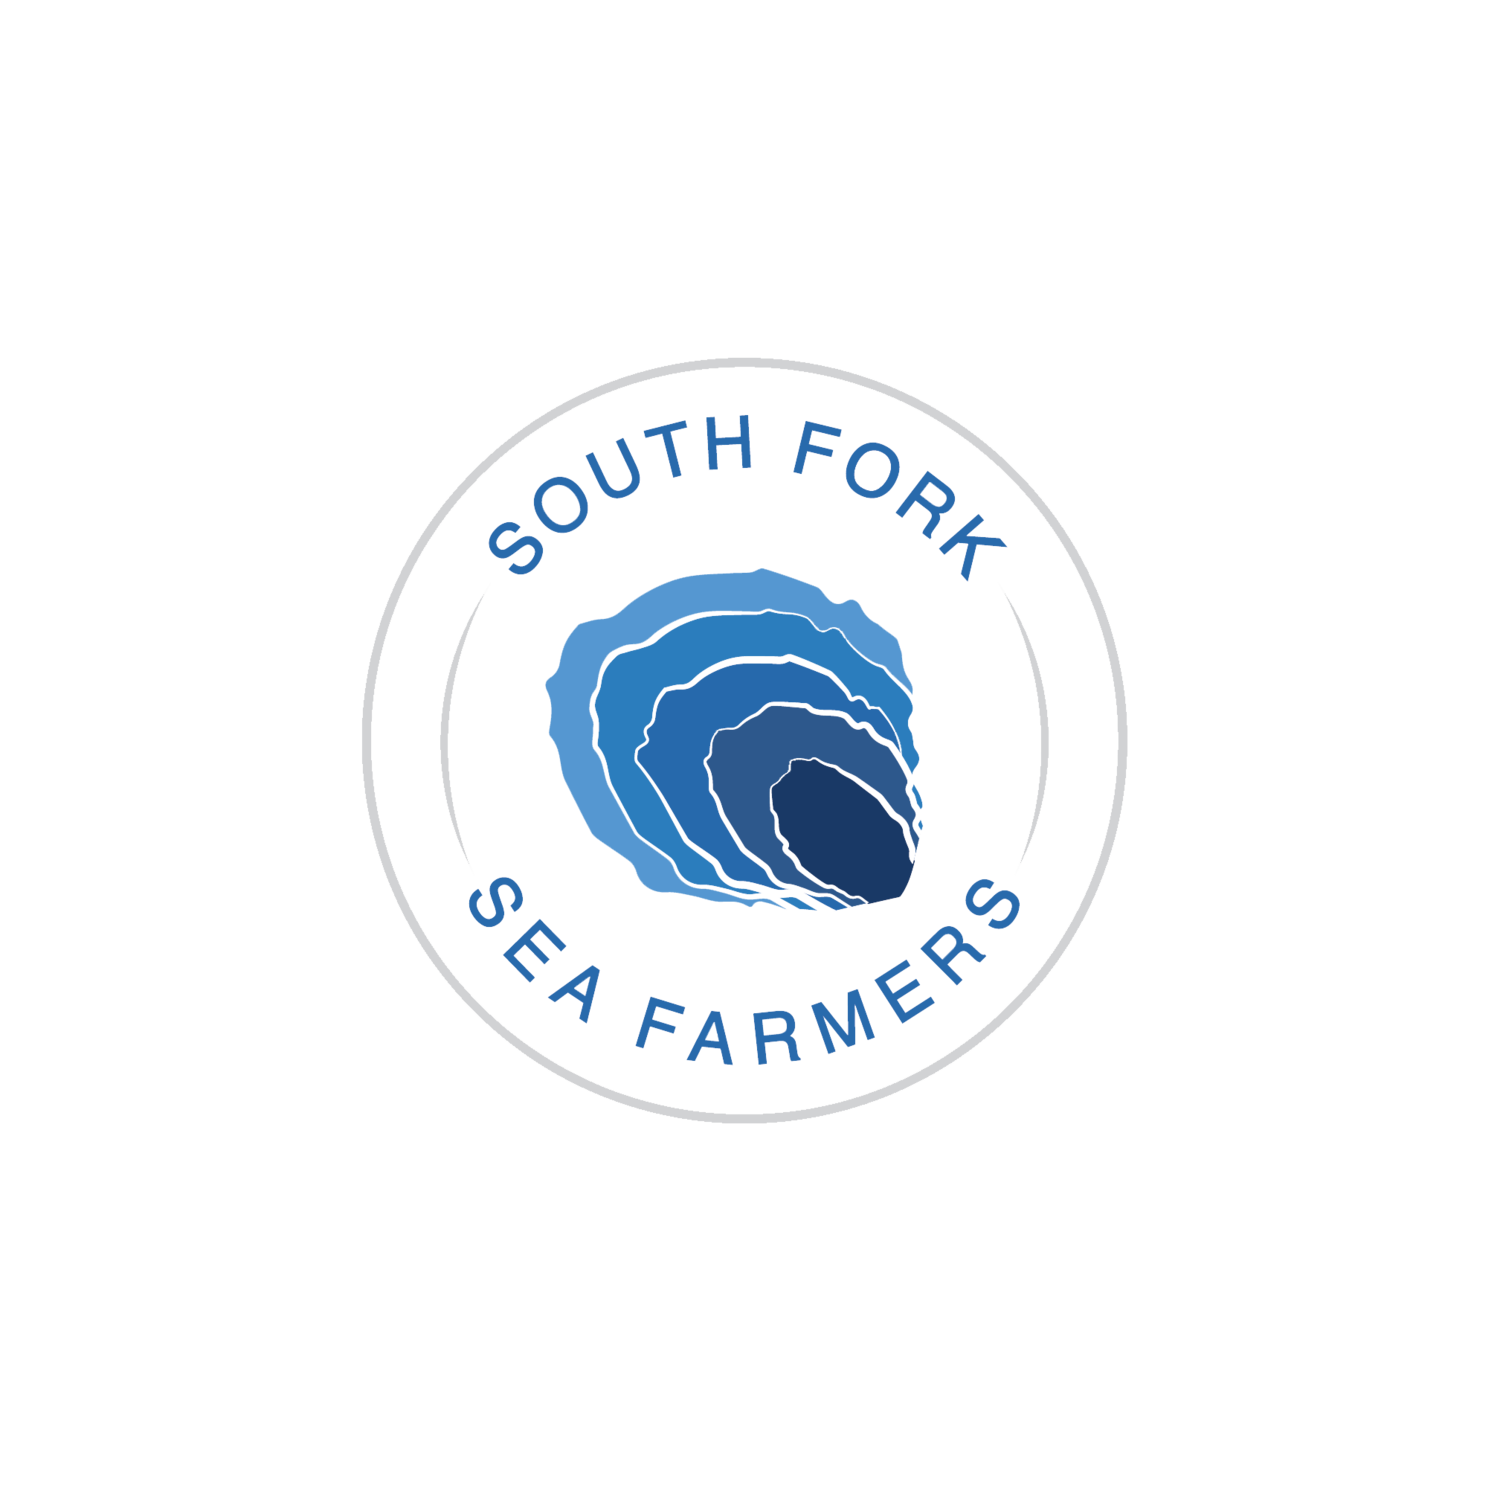 South Fork Sea Farmers